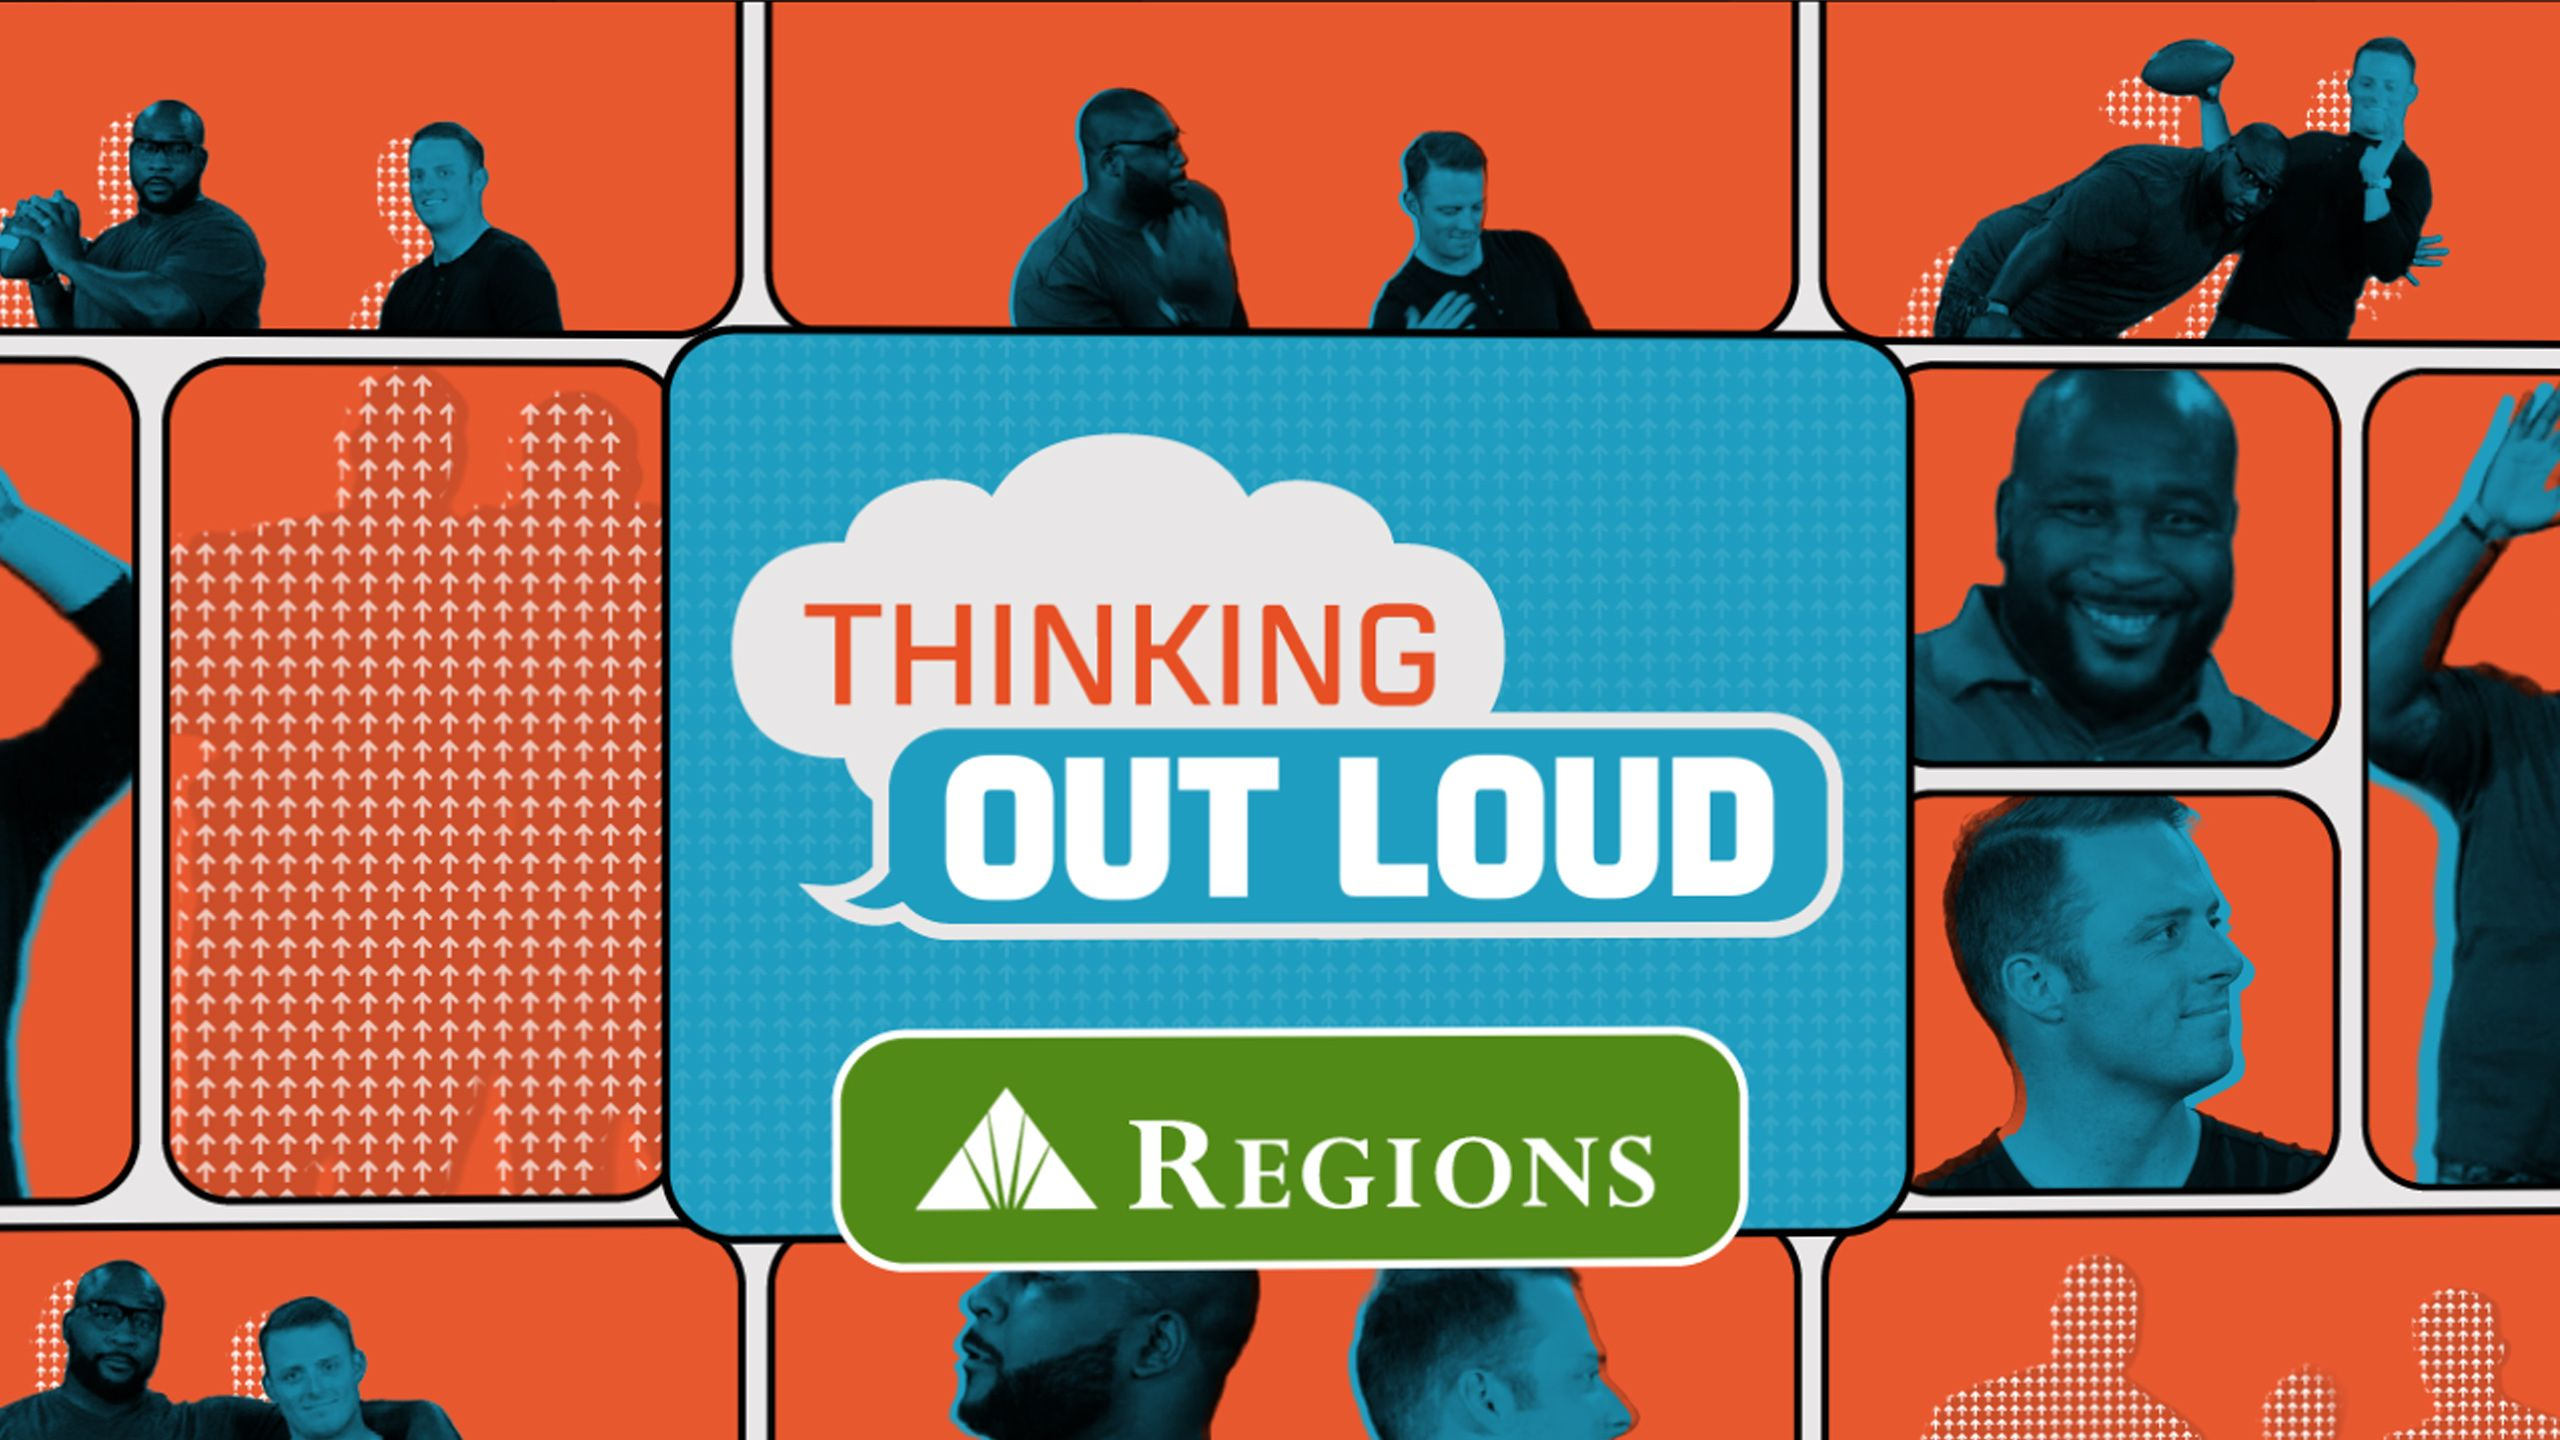 Mon, 11/20 - Thinking Out Loud Presented by Regions Bank